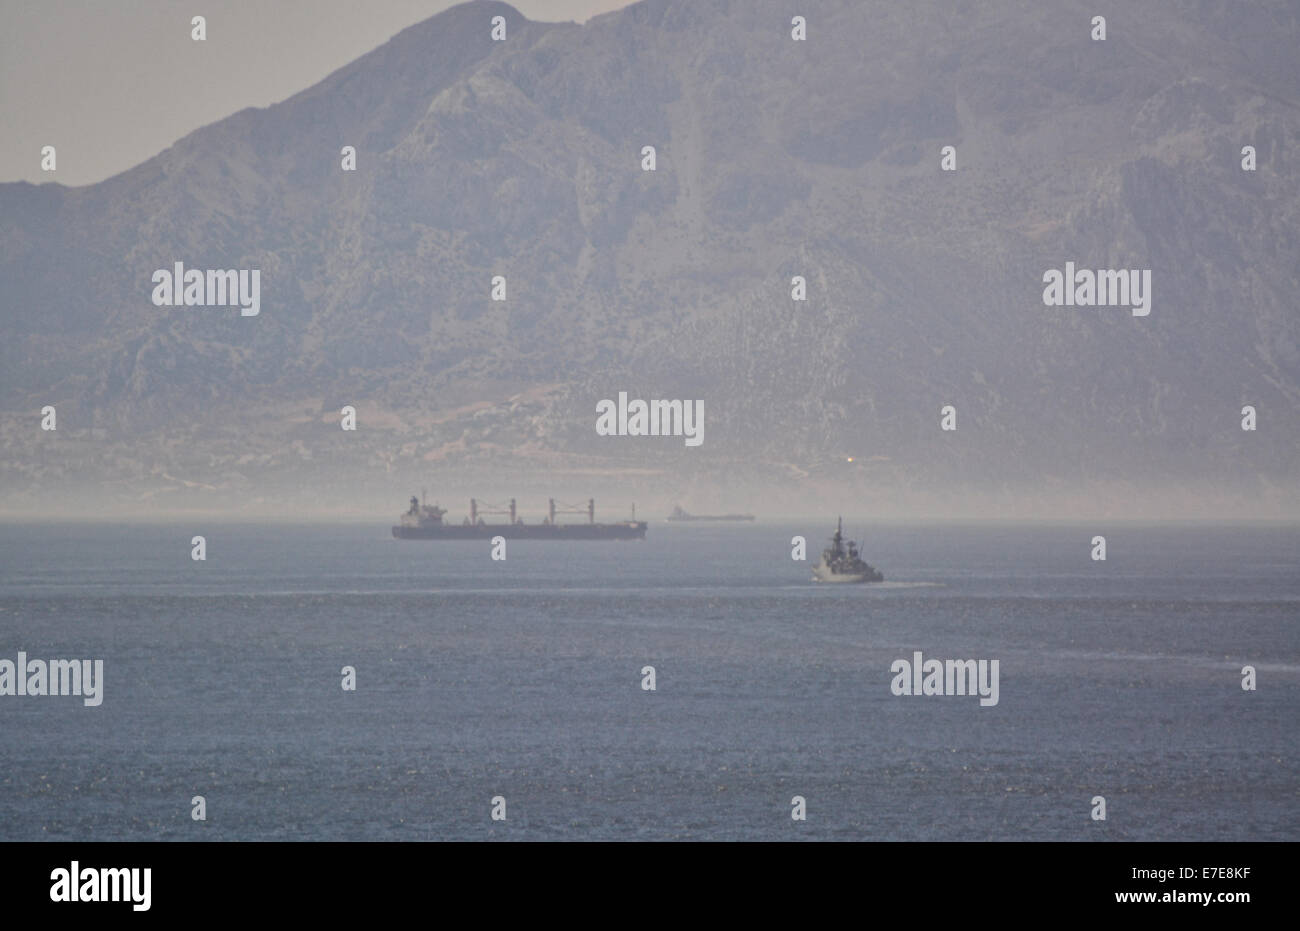 Gibraltar. 15th Sep, 2014. A Spanish naval frigate made an  unauthorised incursion into British Gibraltar Territorial - Stock Image